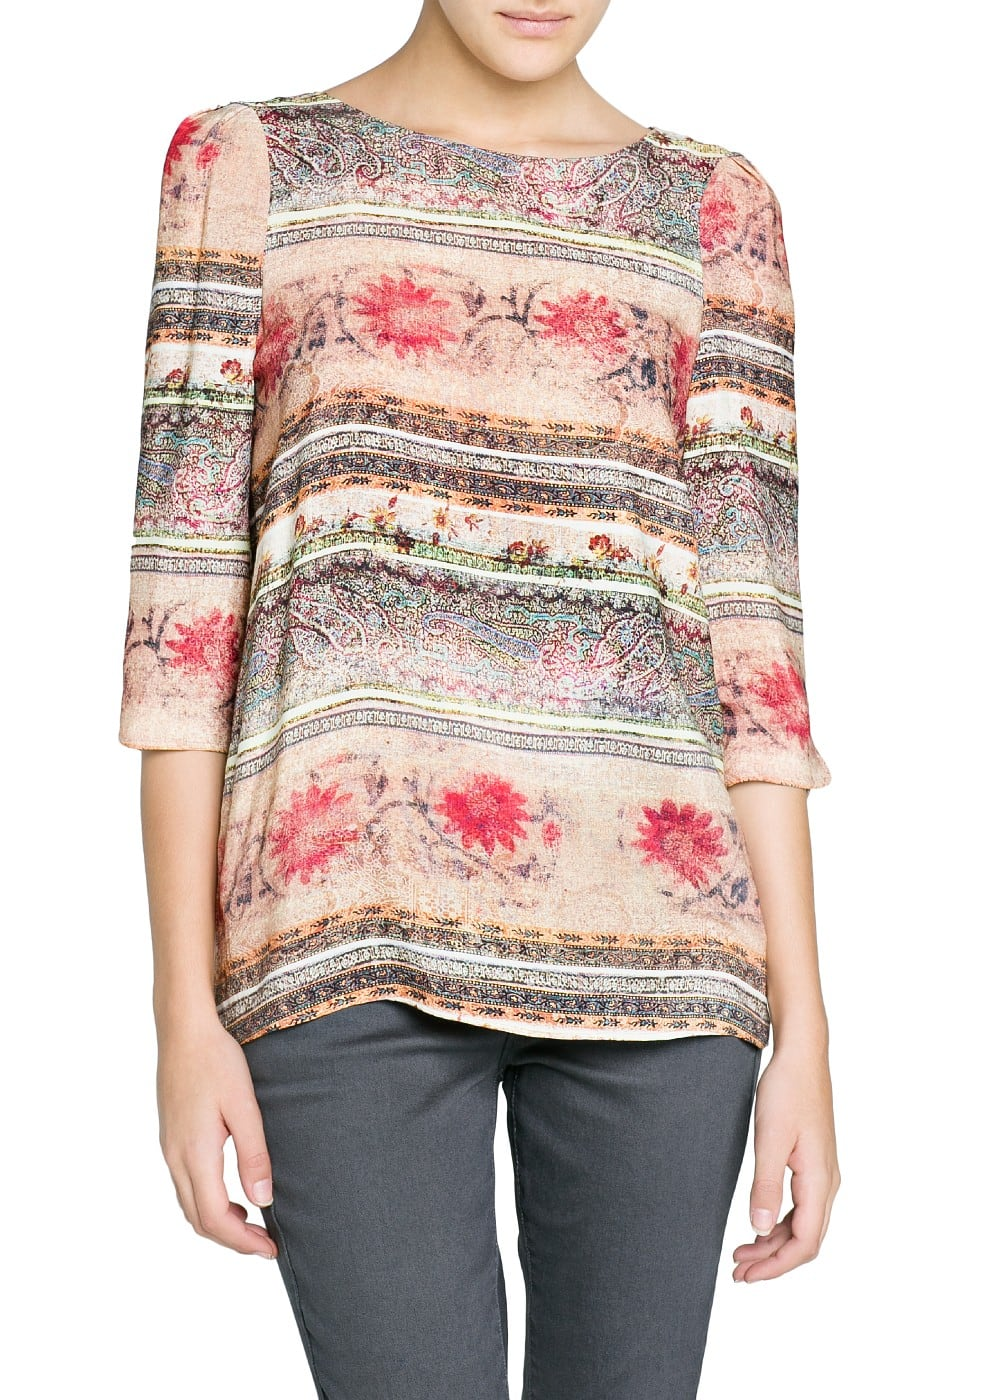 Faded print flowy blouse